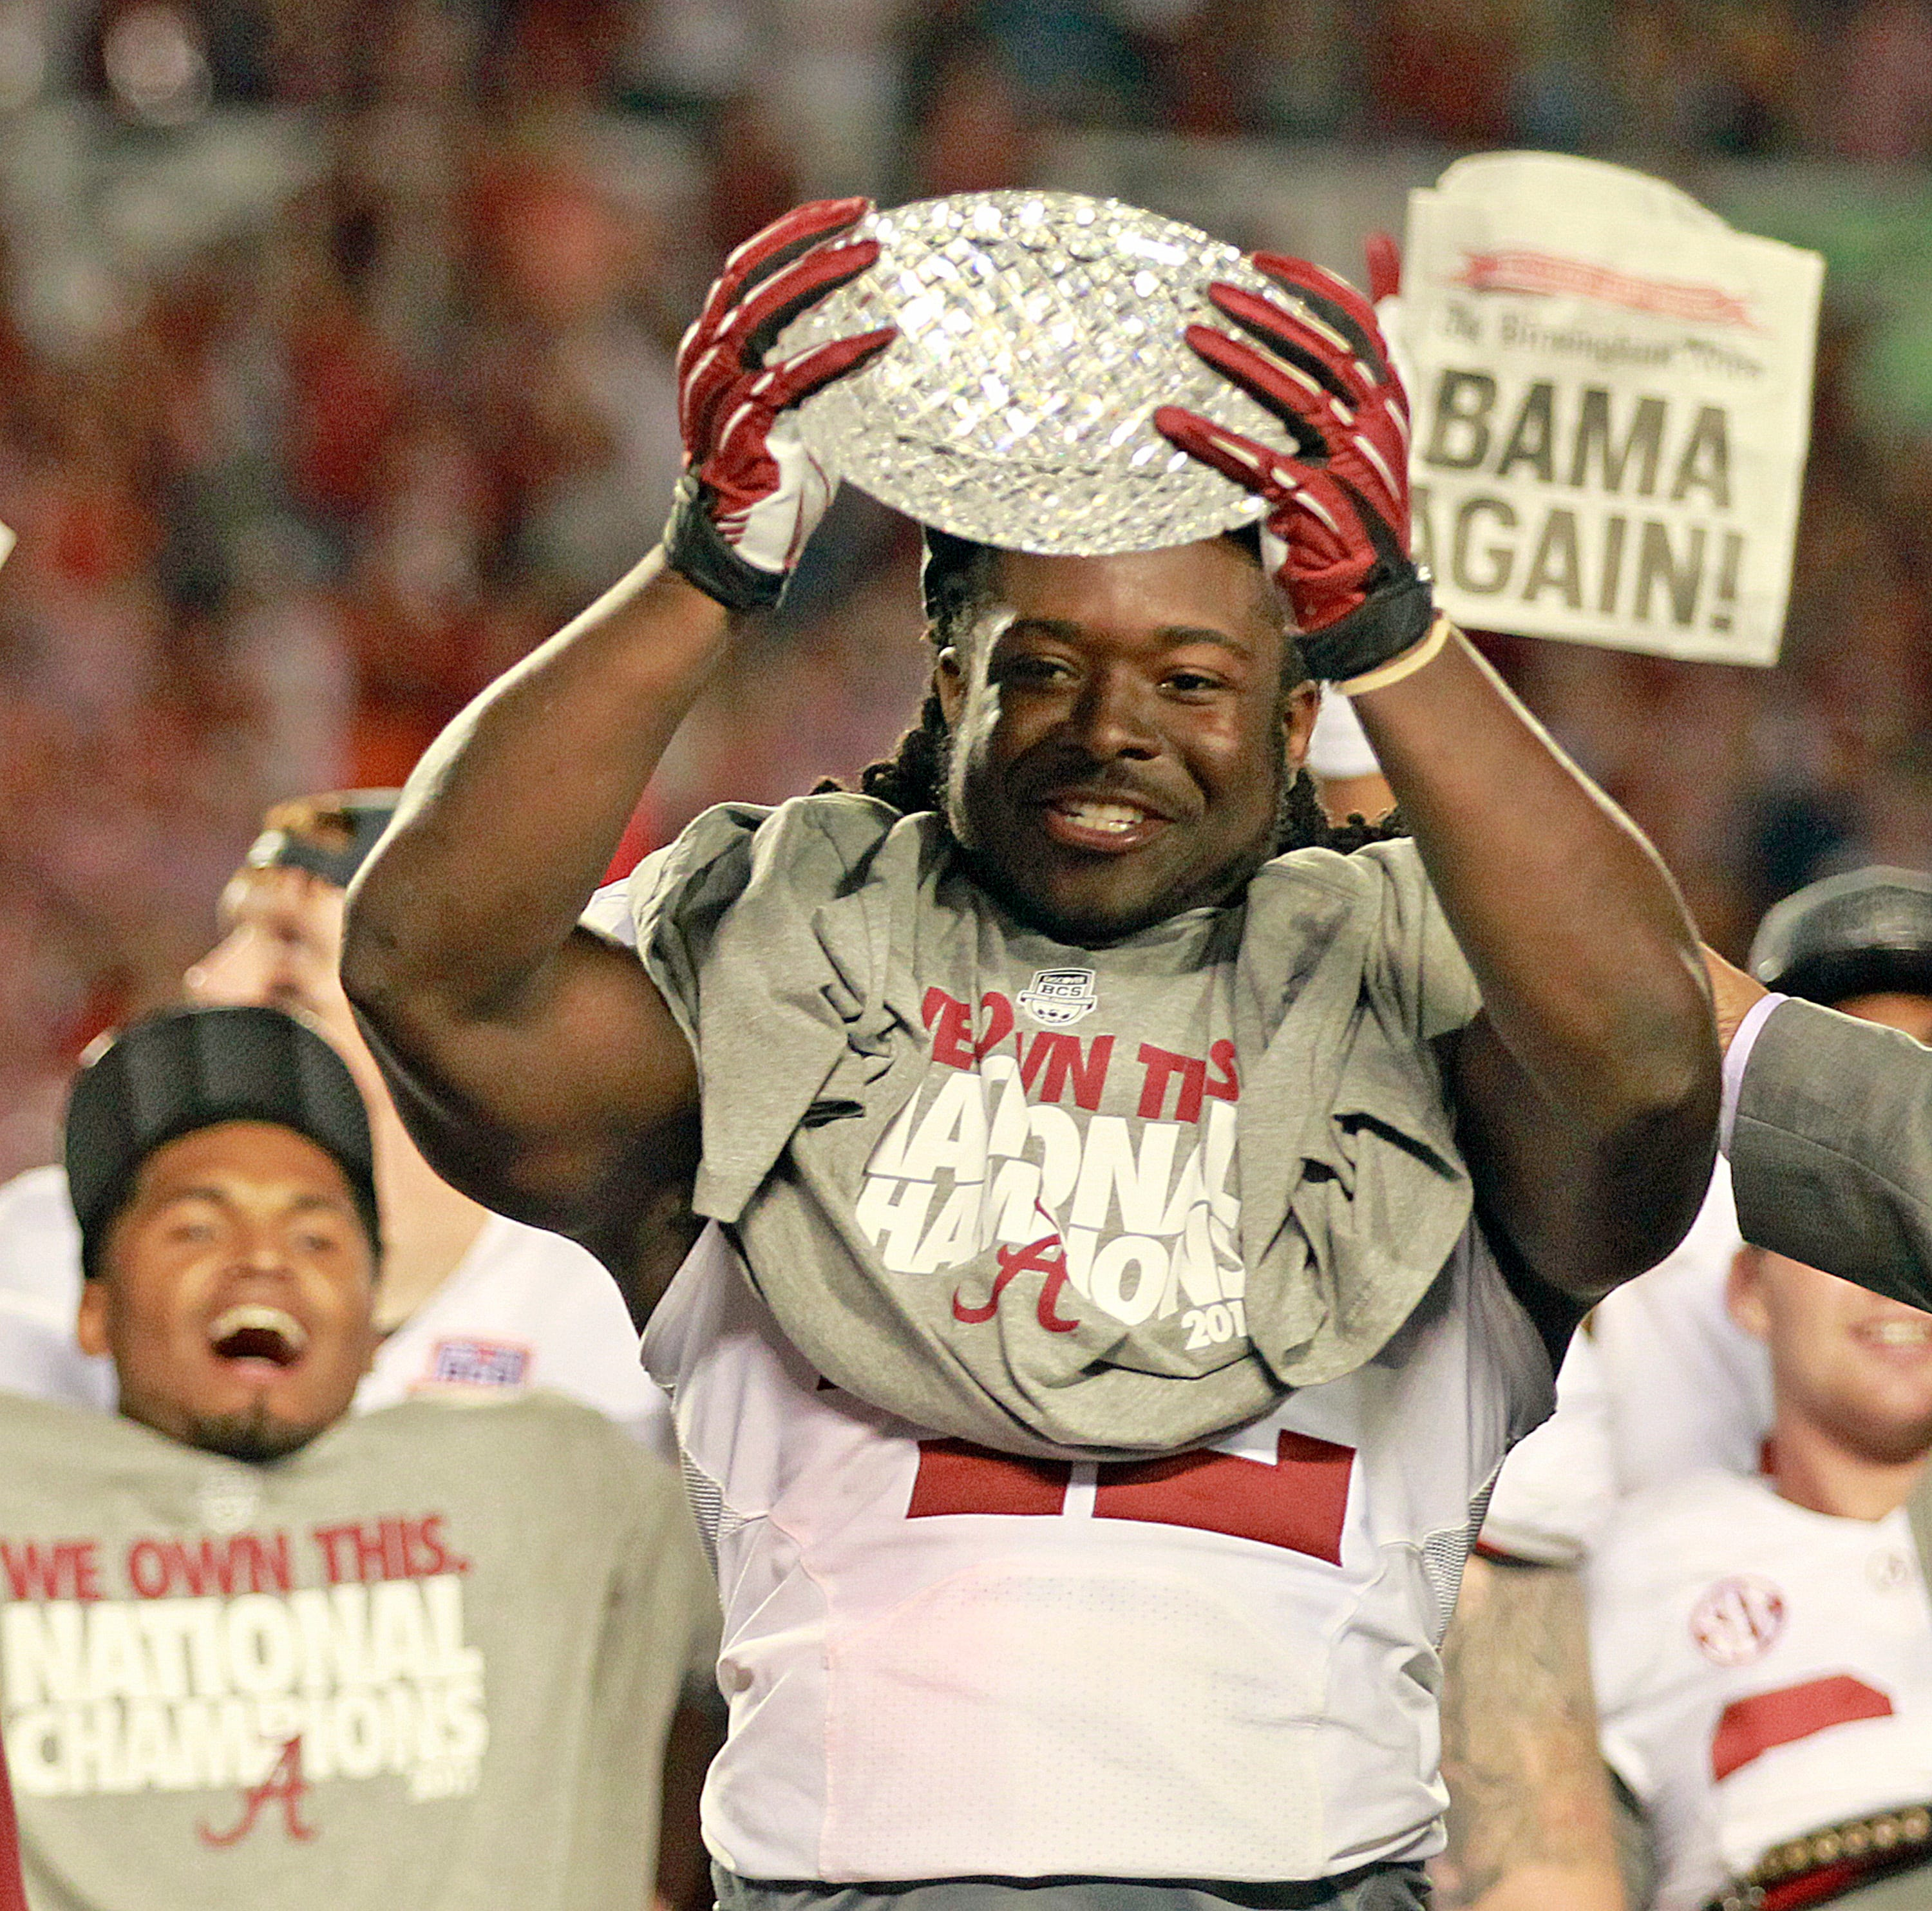 Alabama running back Eddie Lacy celebrates  following a 42-14 win against Notre Dame in the BCS National Championship game on Jan. 7, 2013, in Miami Gardens, Florida.